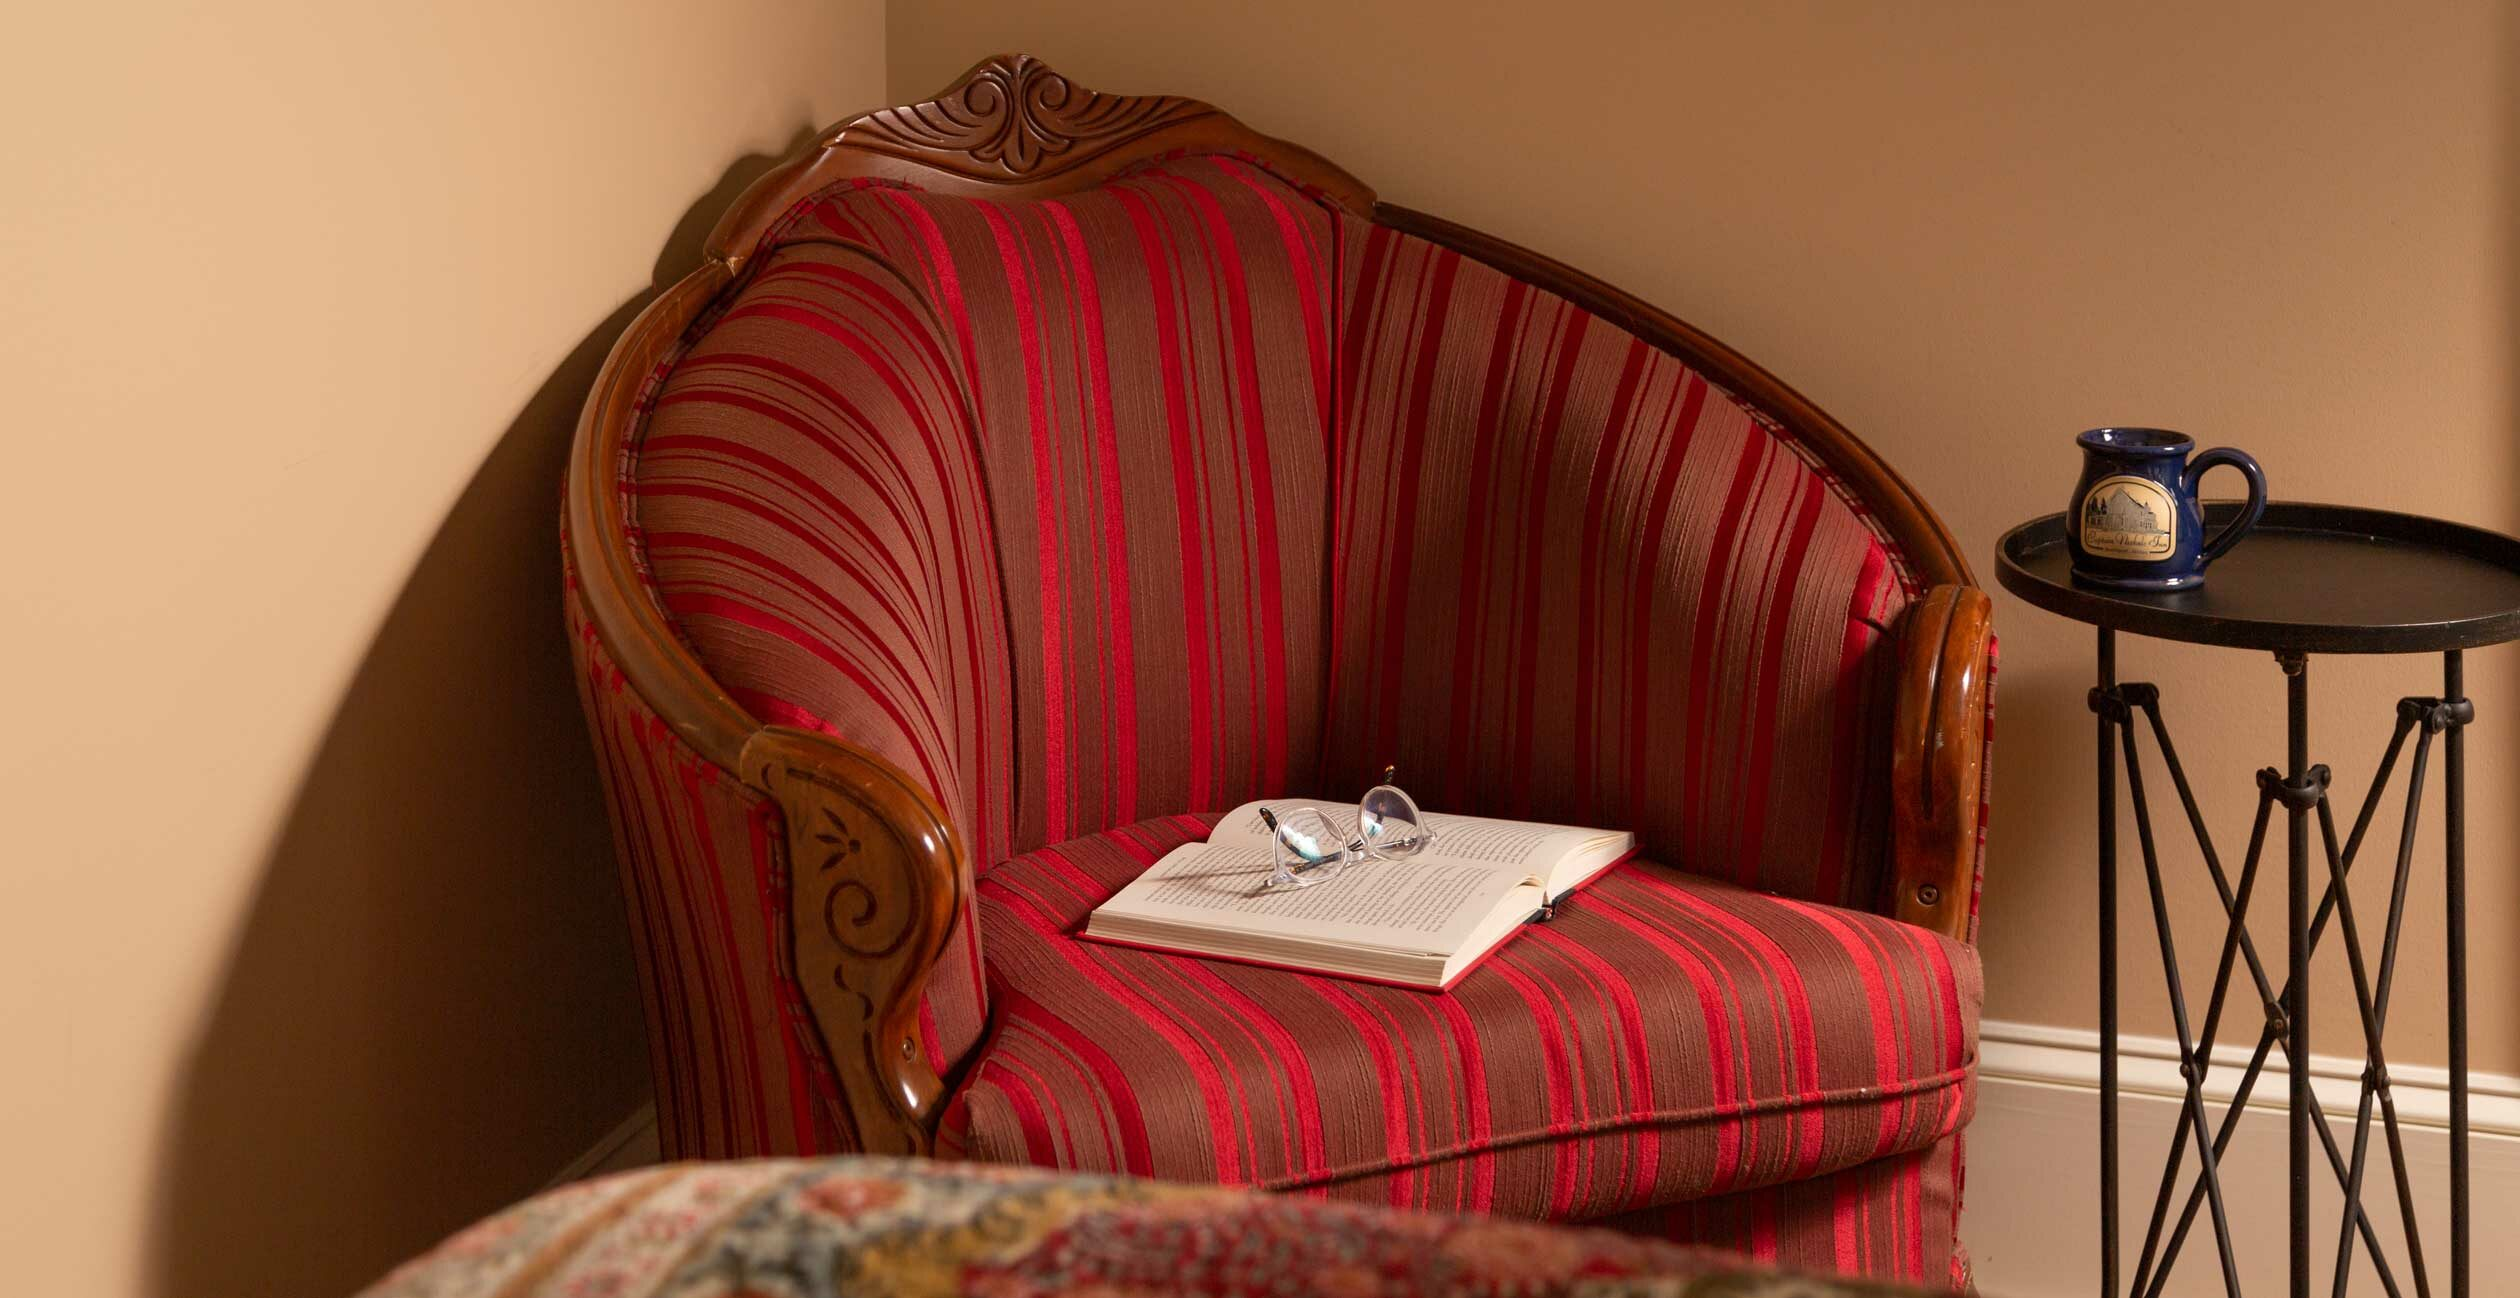 Red arm chair with a coffee cup on a small table